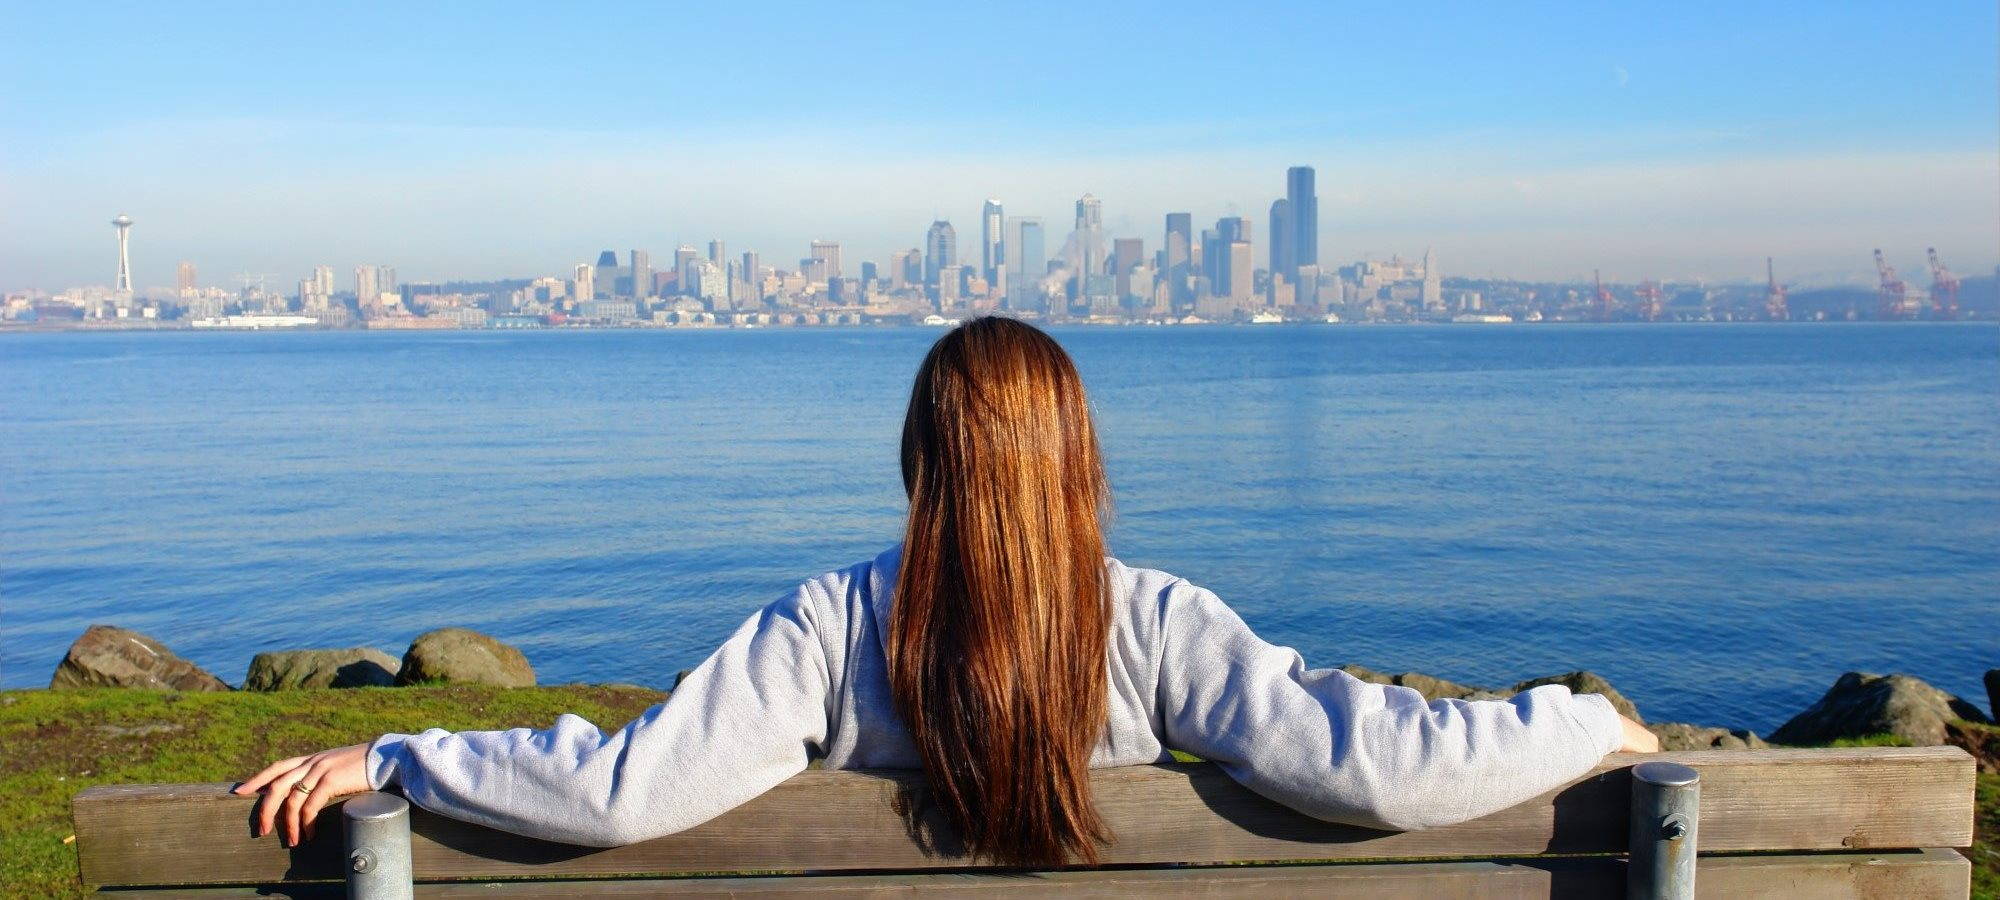 Woman Sitting on Bench Looking at Downtown Seattle, Washington Skyline